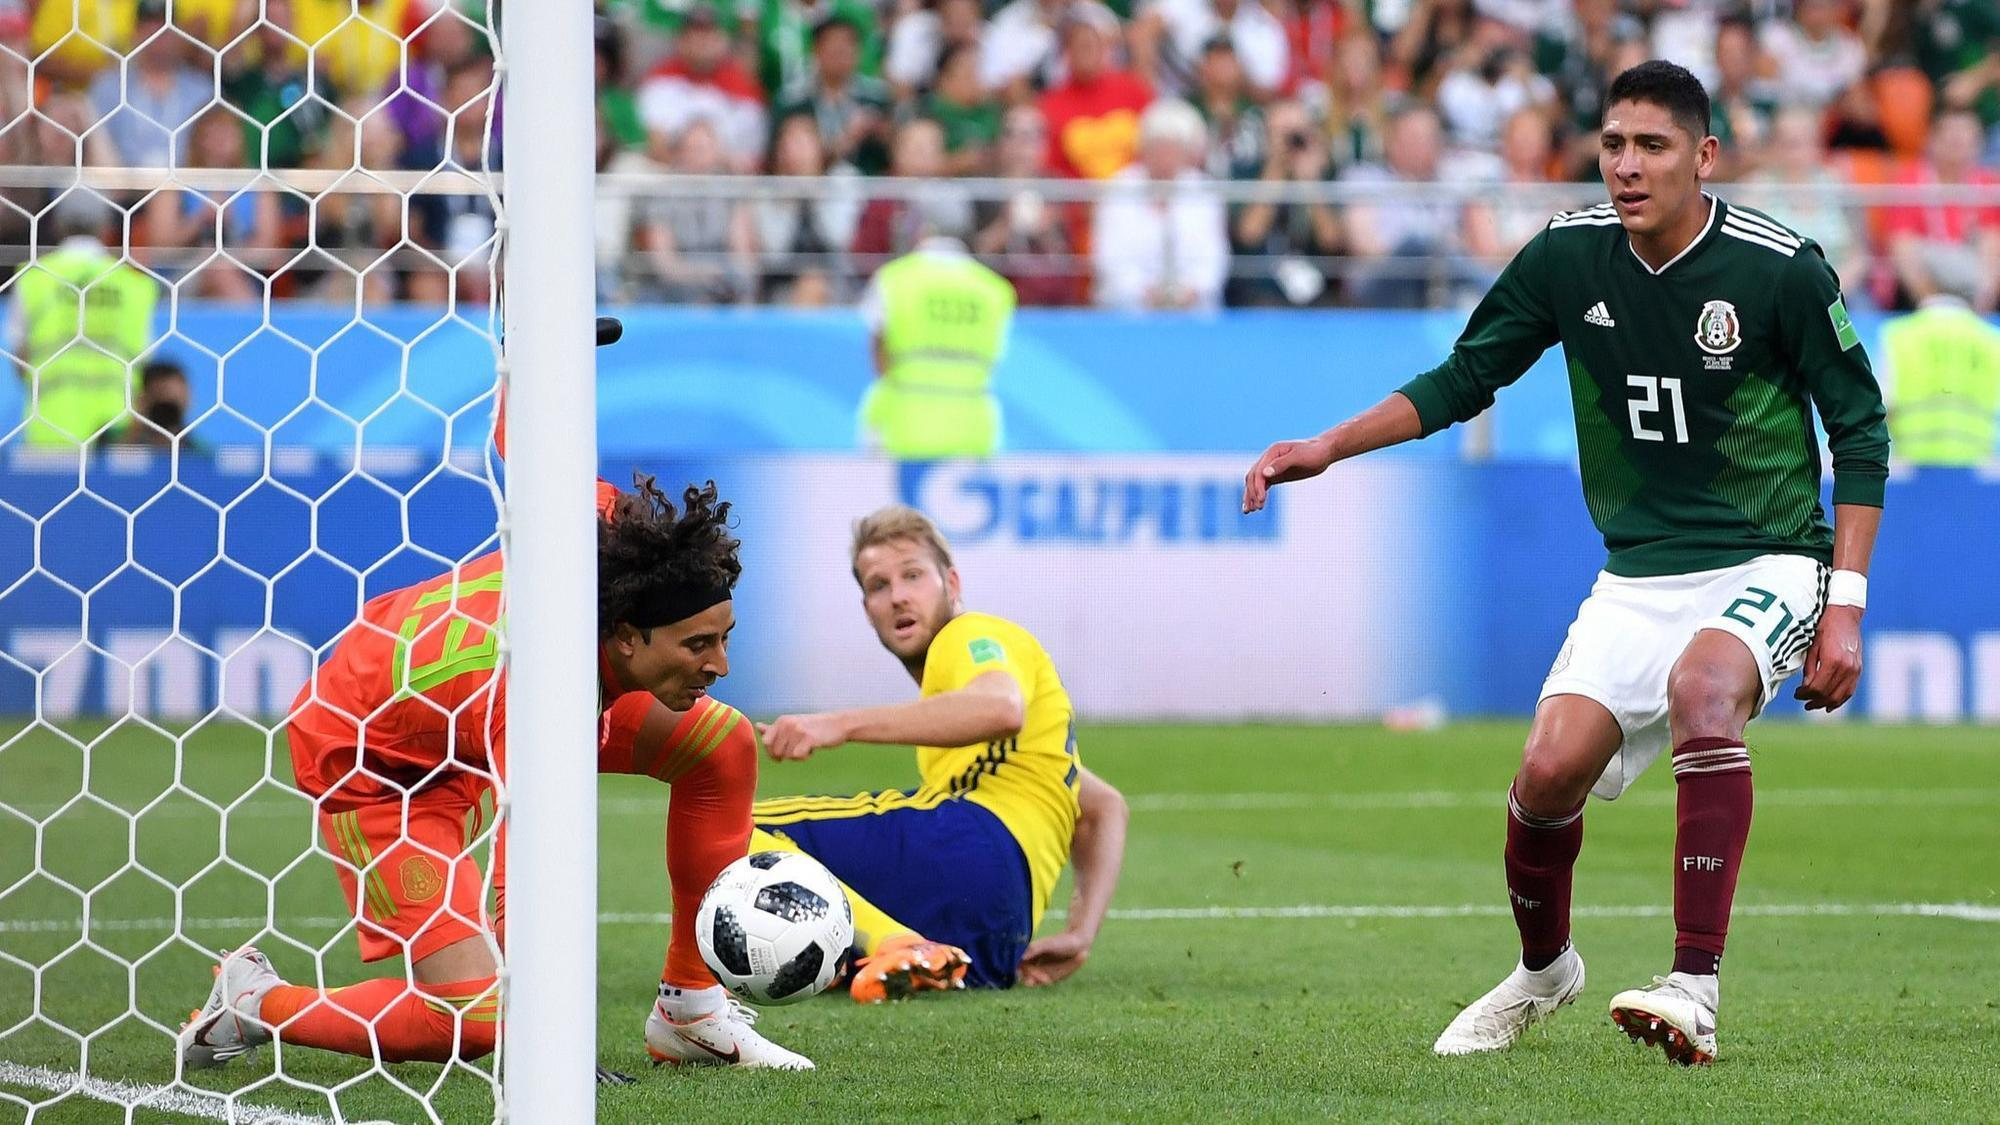 http://www.trbimg.com/img-5b33b624/turbine/sd-sp-world-cup-mexico-sweden-world-cup-20180627